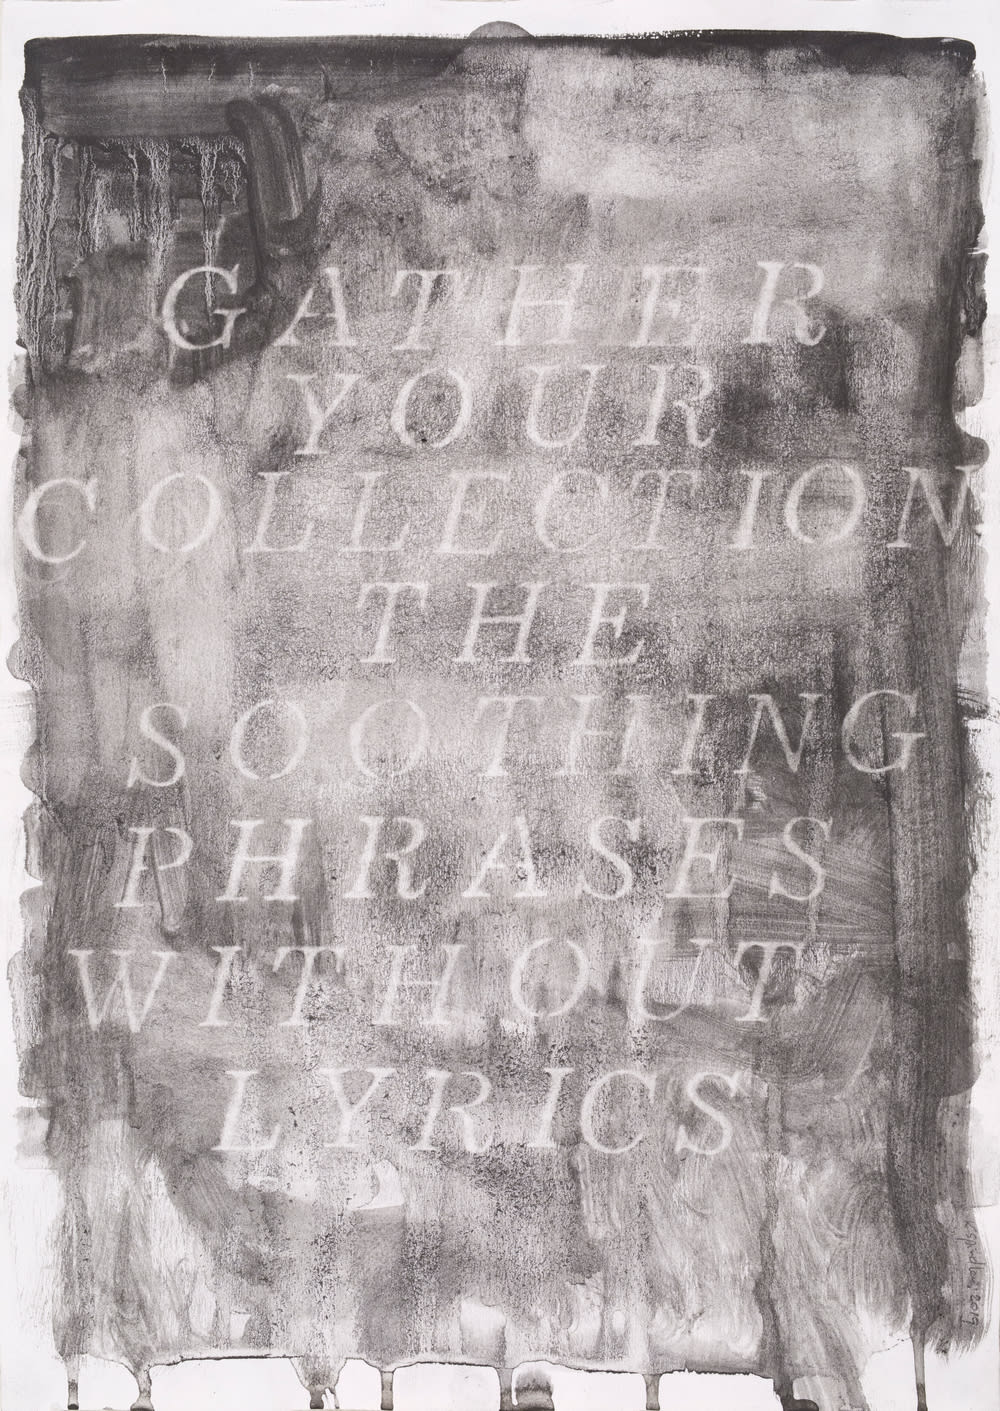 Katherine Spindler, The Soothing Phrases, 2019